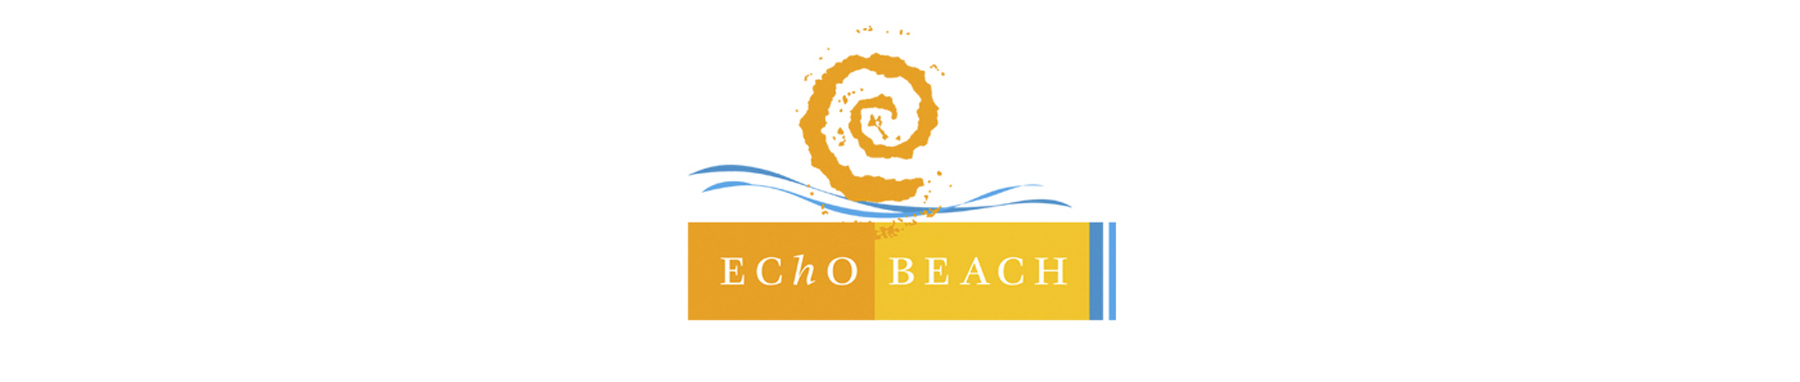 Echo Beach banner on white background